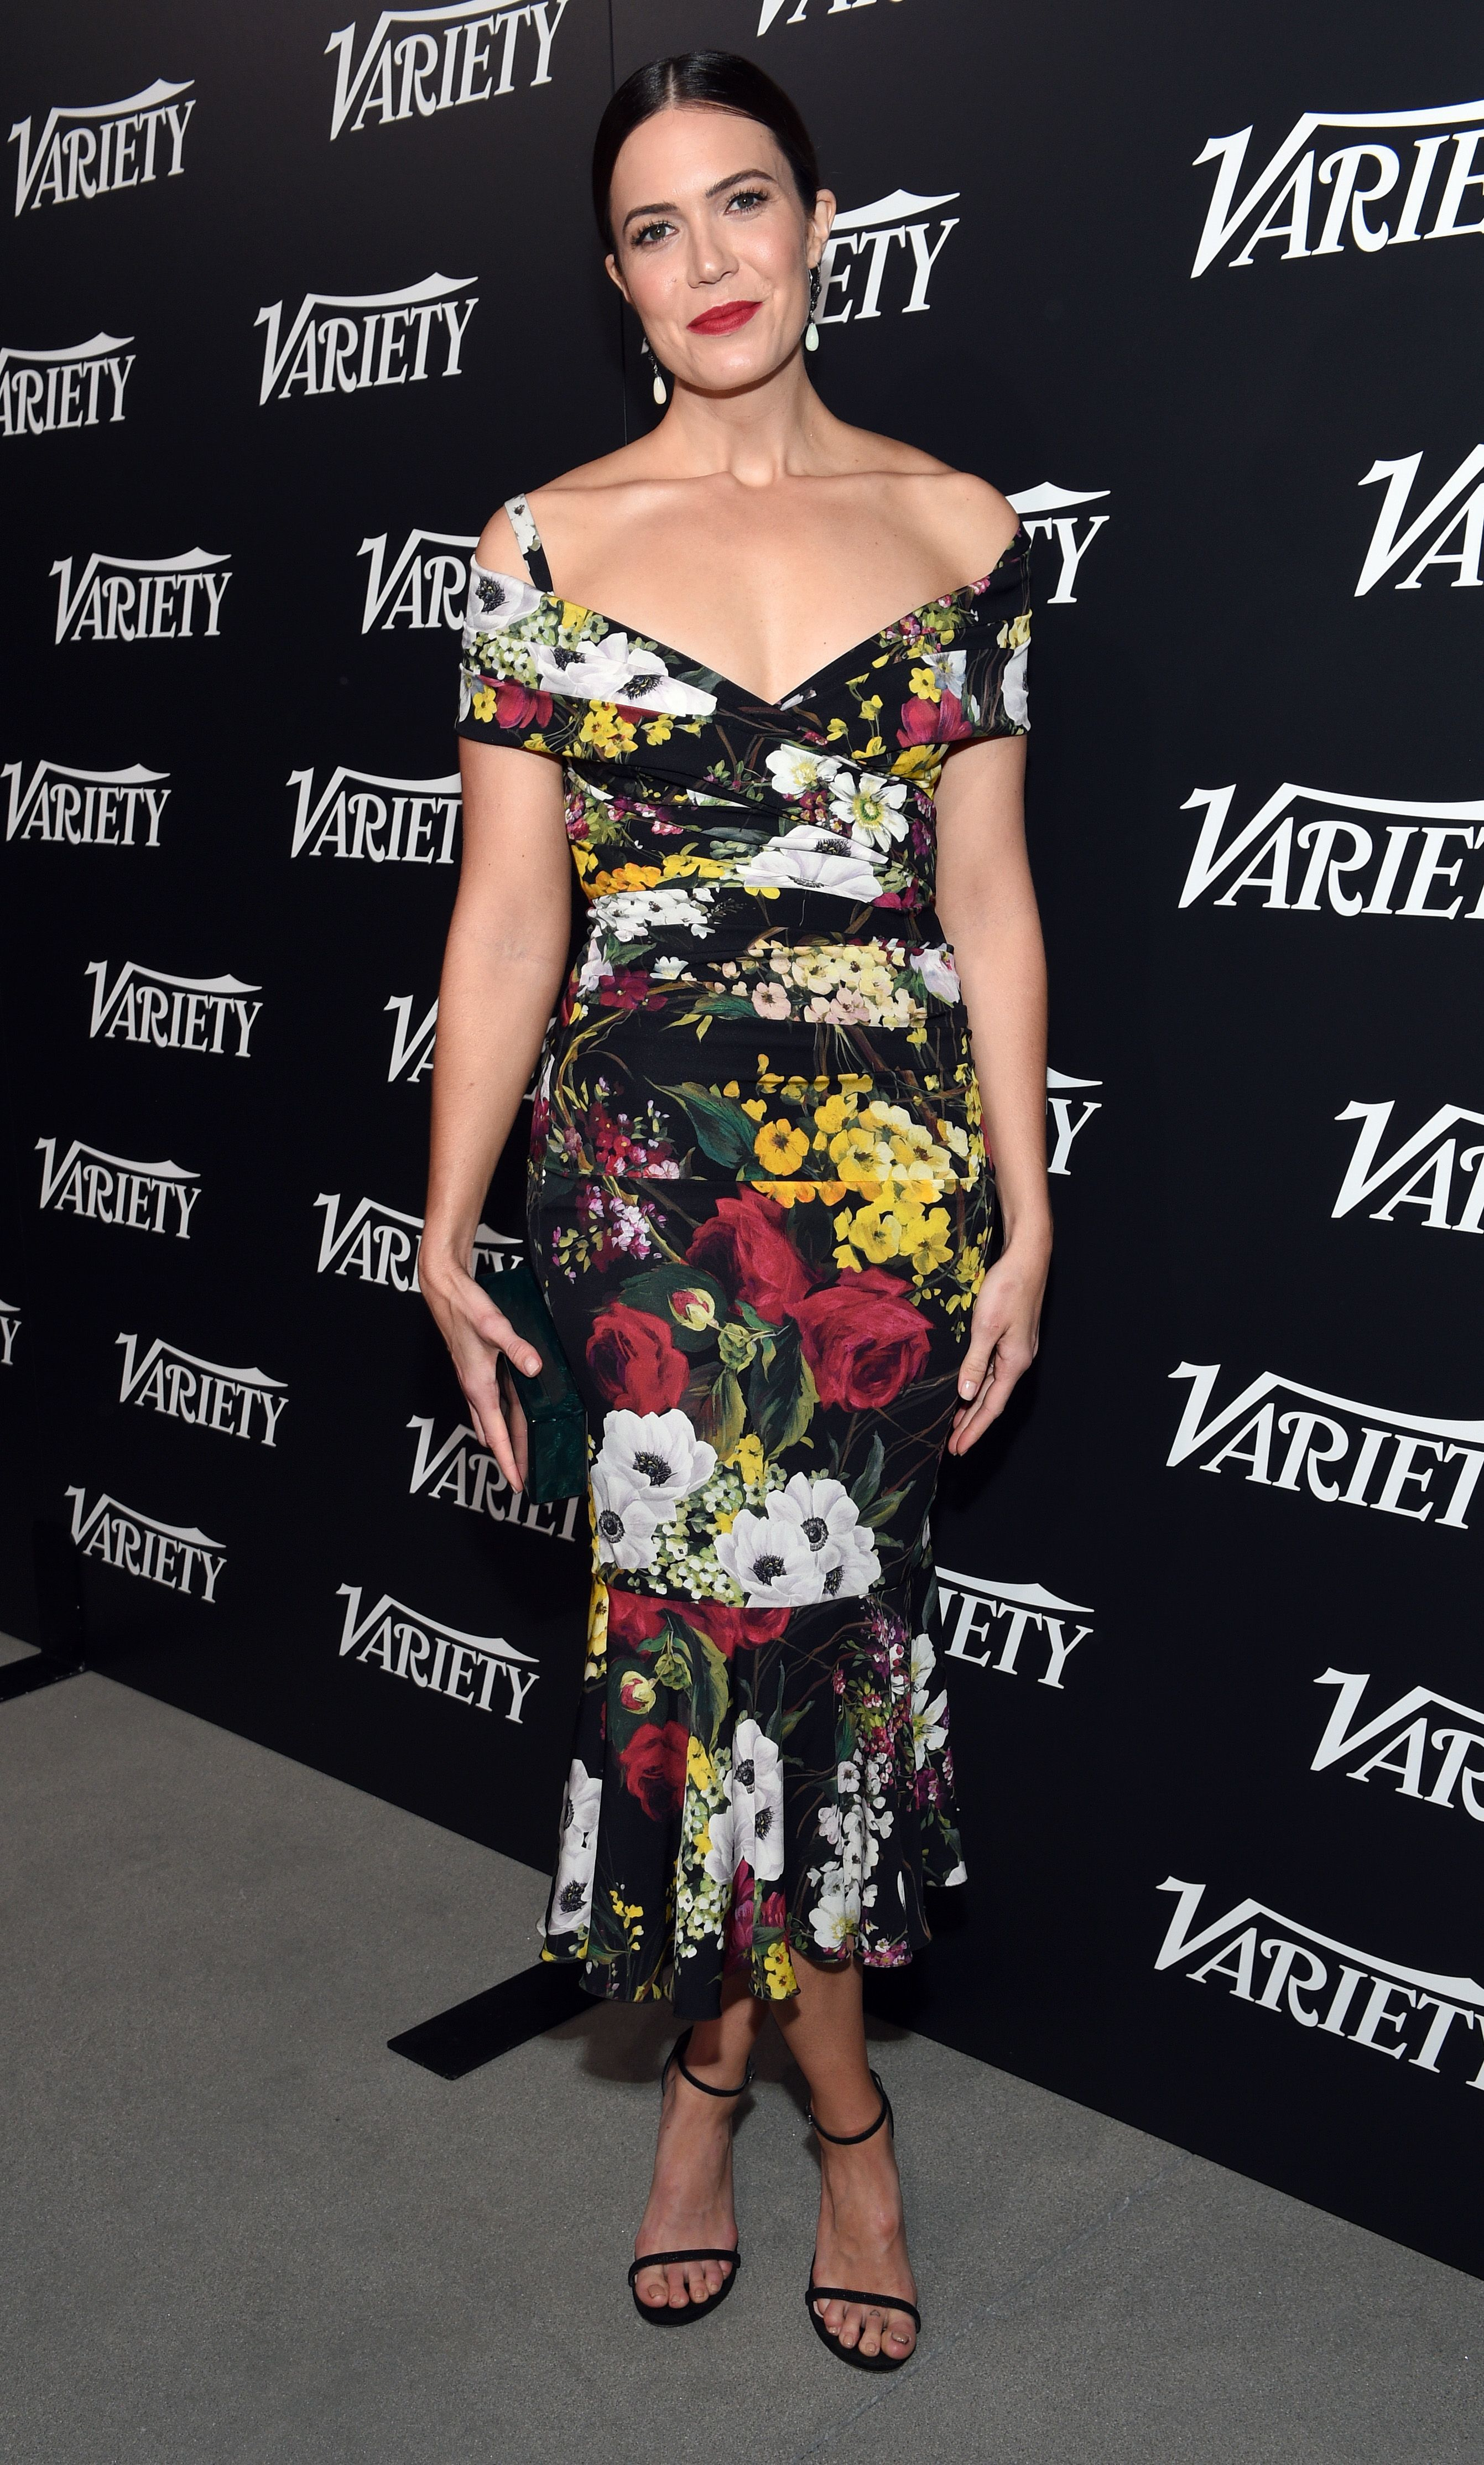 Mandy Moore attends the Variety New Leaders in Los Angeles on Oct. 18, 2017.